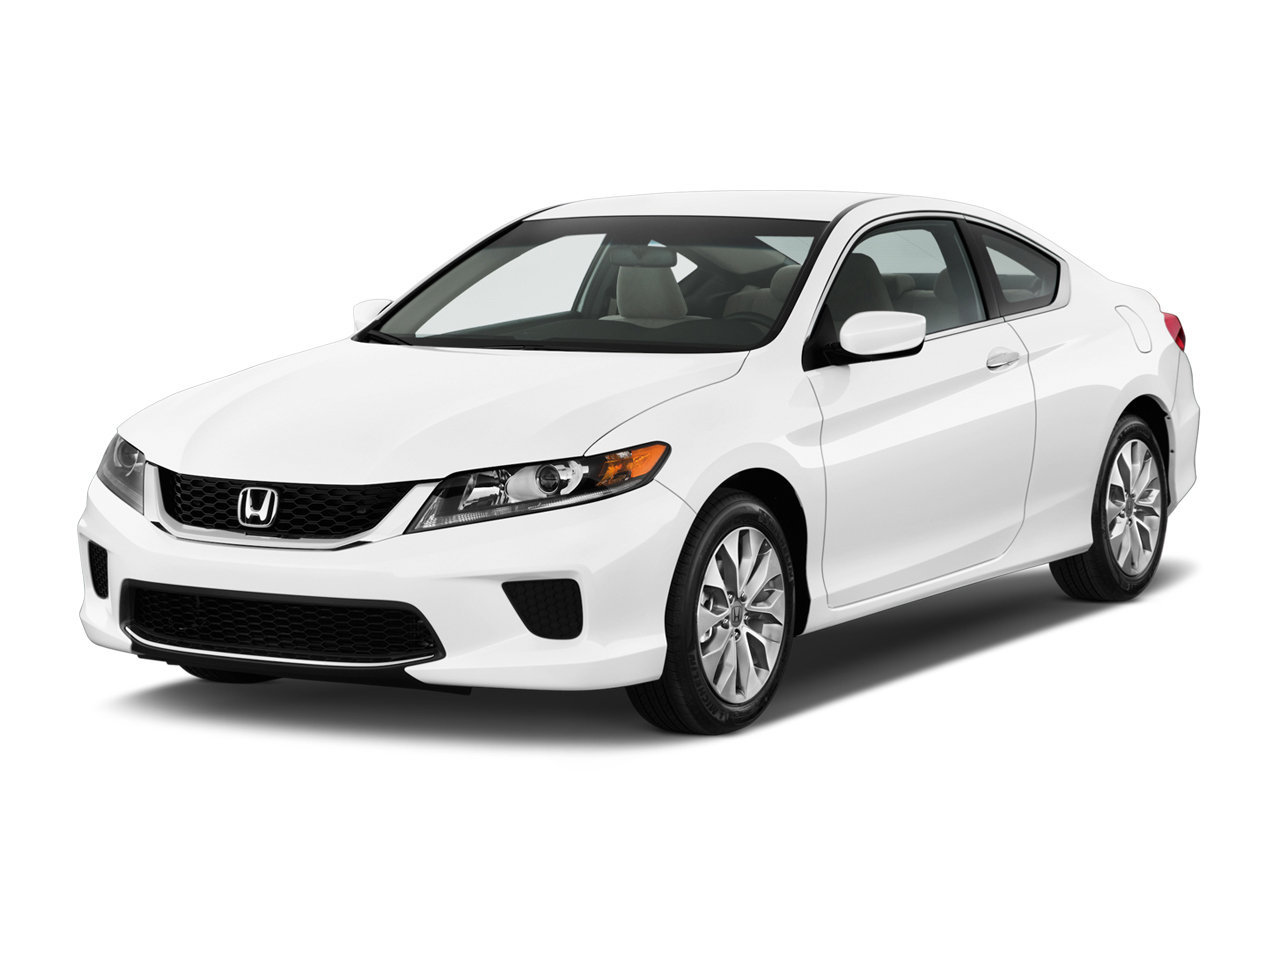 2014 honda accord coupe review ratings specs prices and photos the car connection. Black Bedroom Furniture Sets. Home Design Ideas